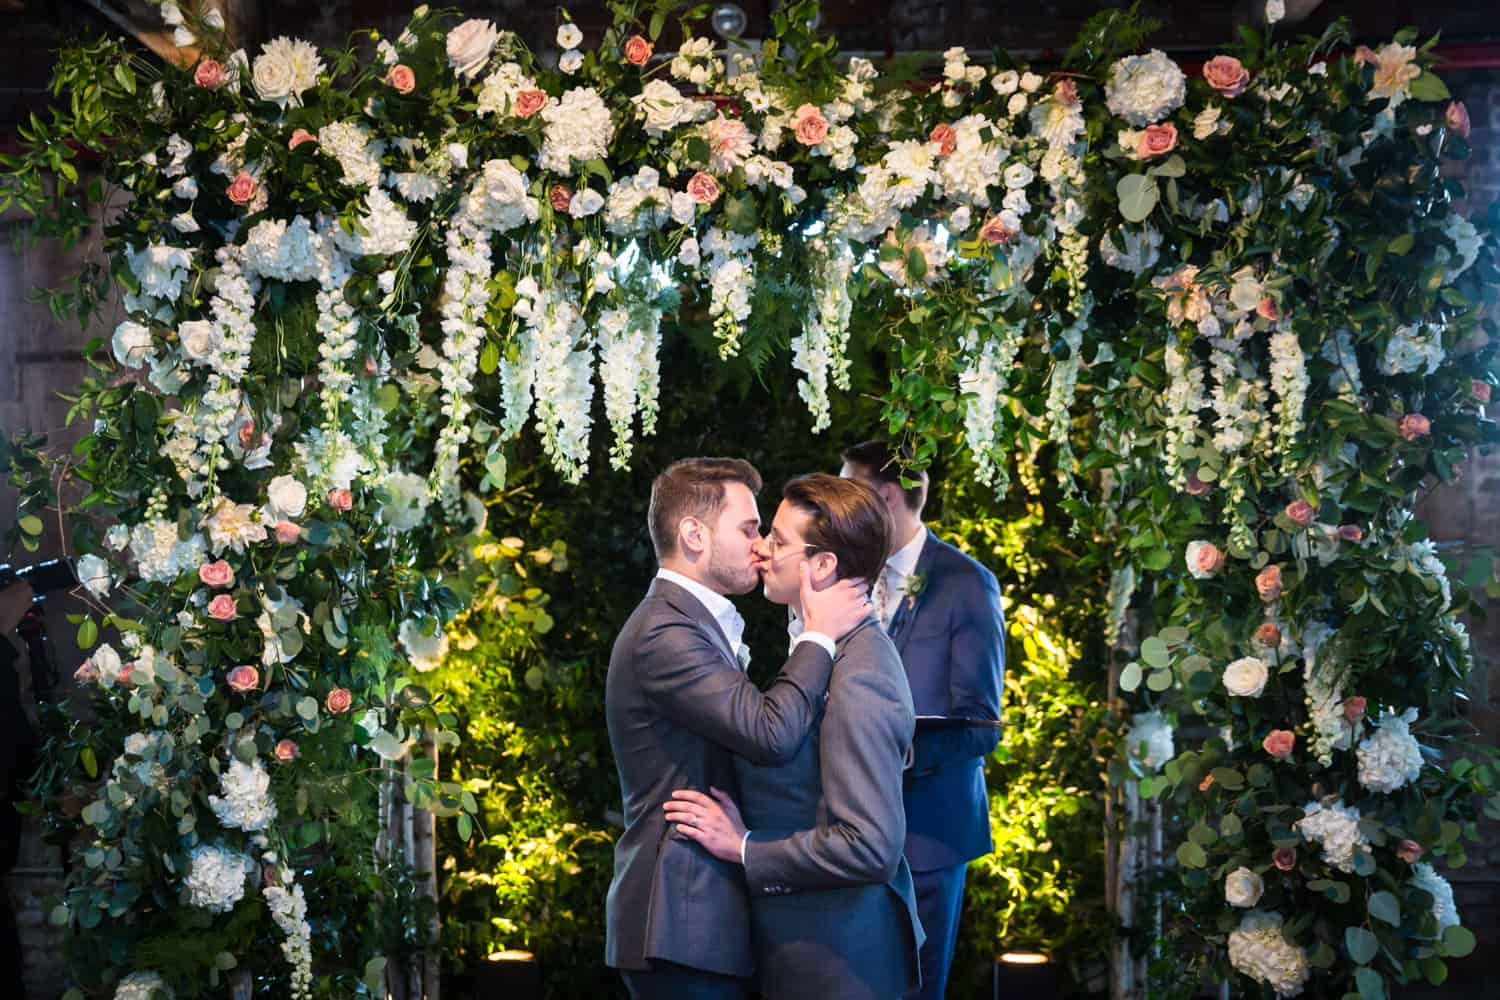 Greenpoint Loft wedding photos of two grooms kissing under gigantic floral altarpiece